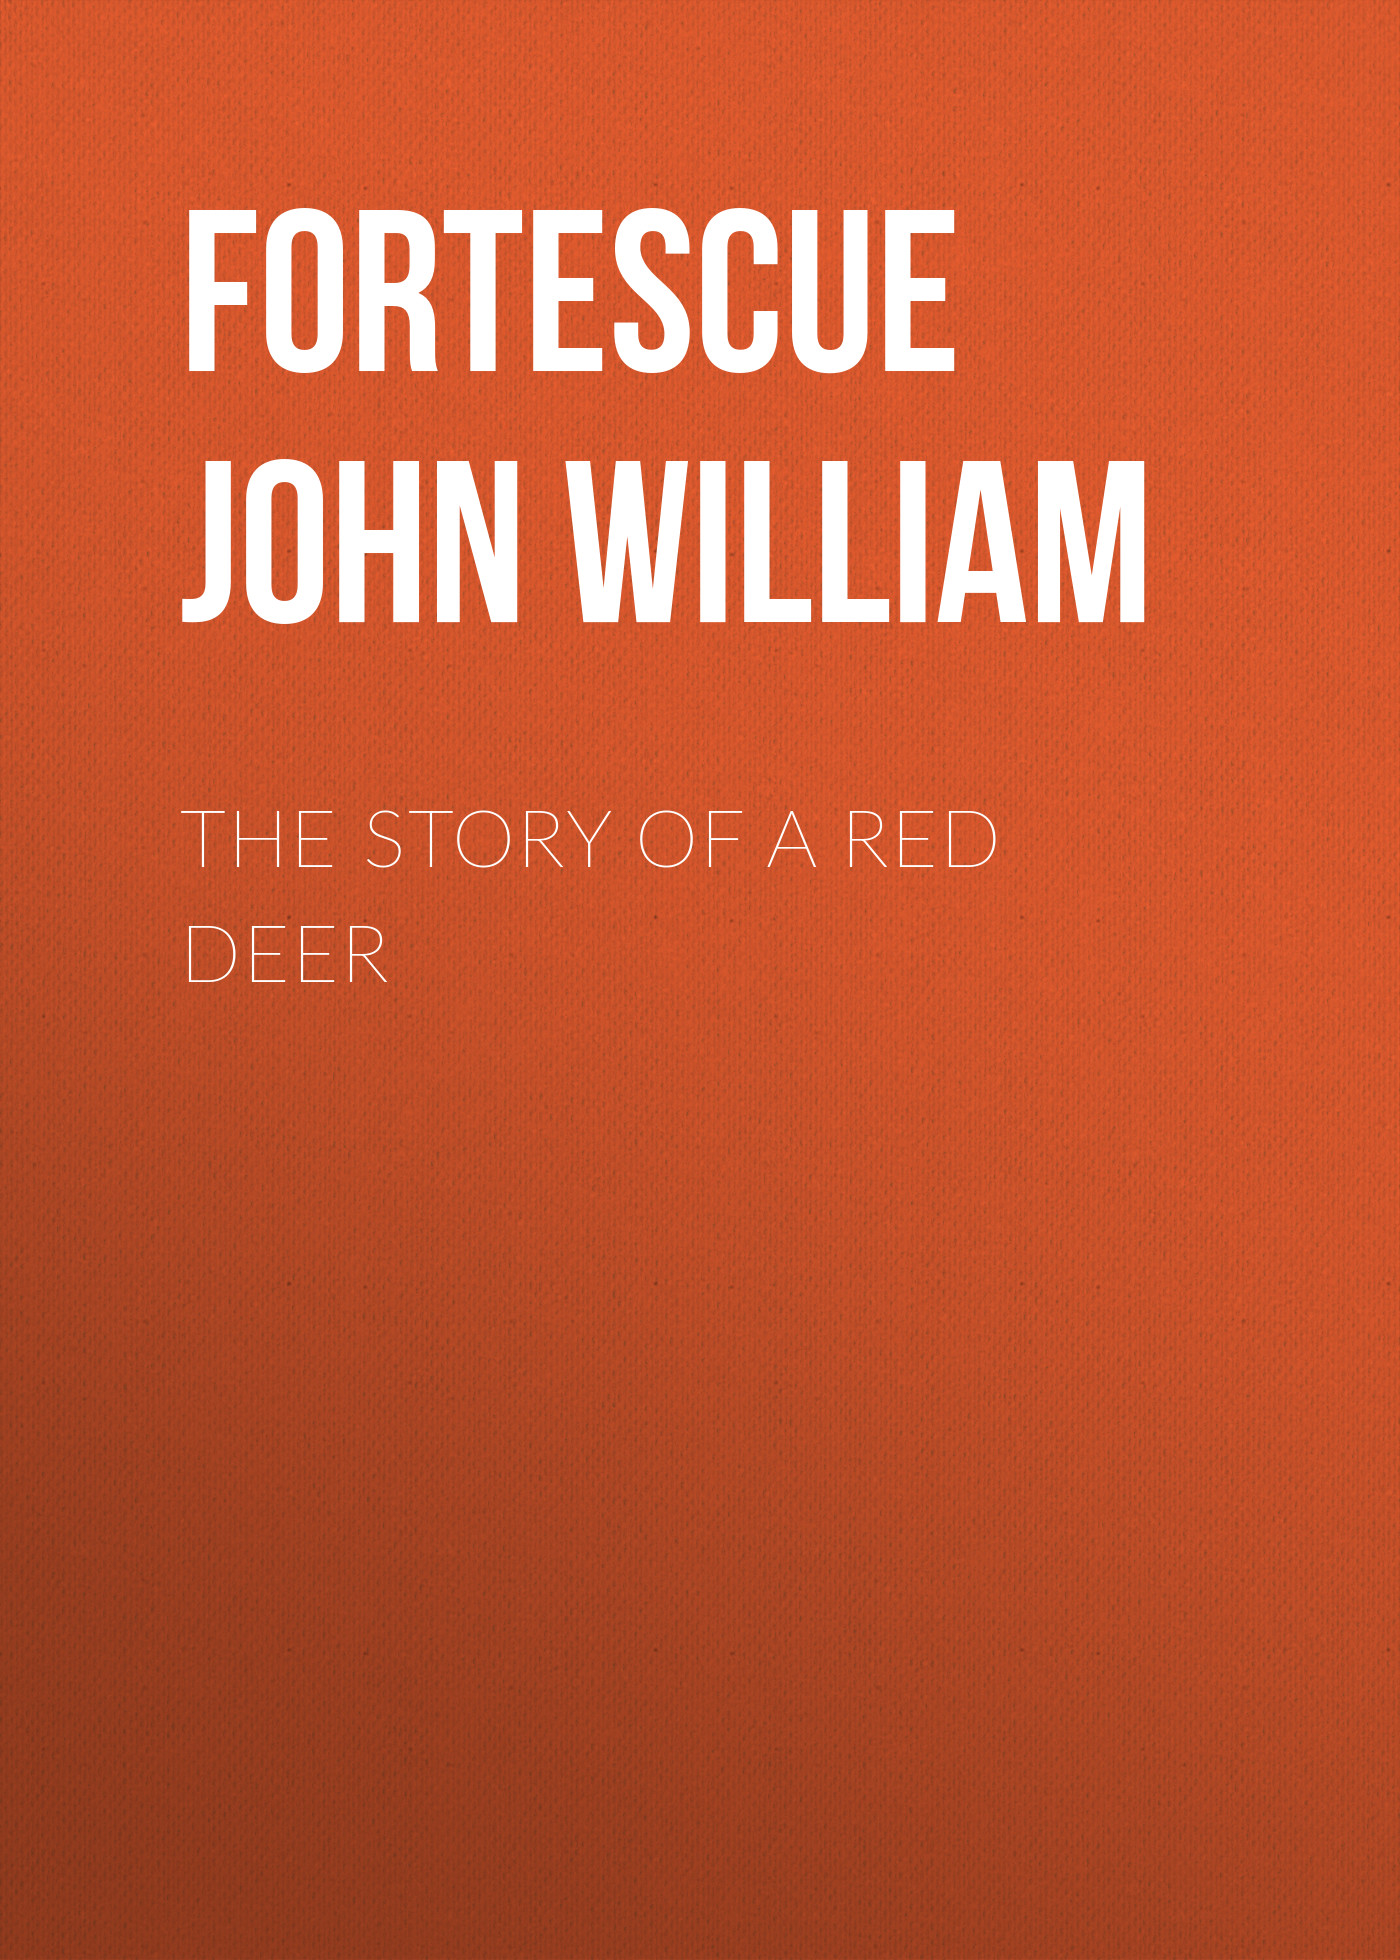 Fortescue John William The Story of a Red Deer john worthen the life of william wordsworth a critical biography